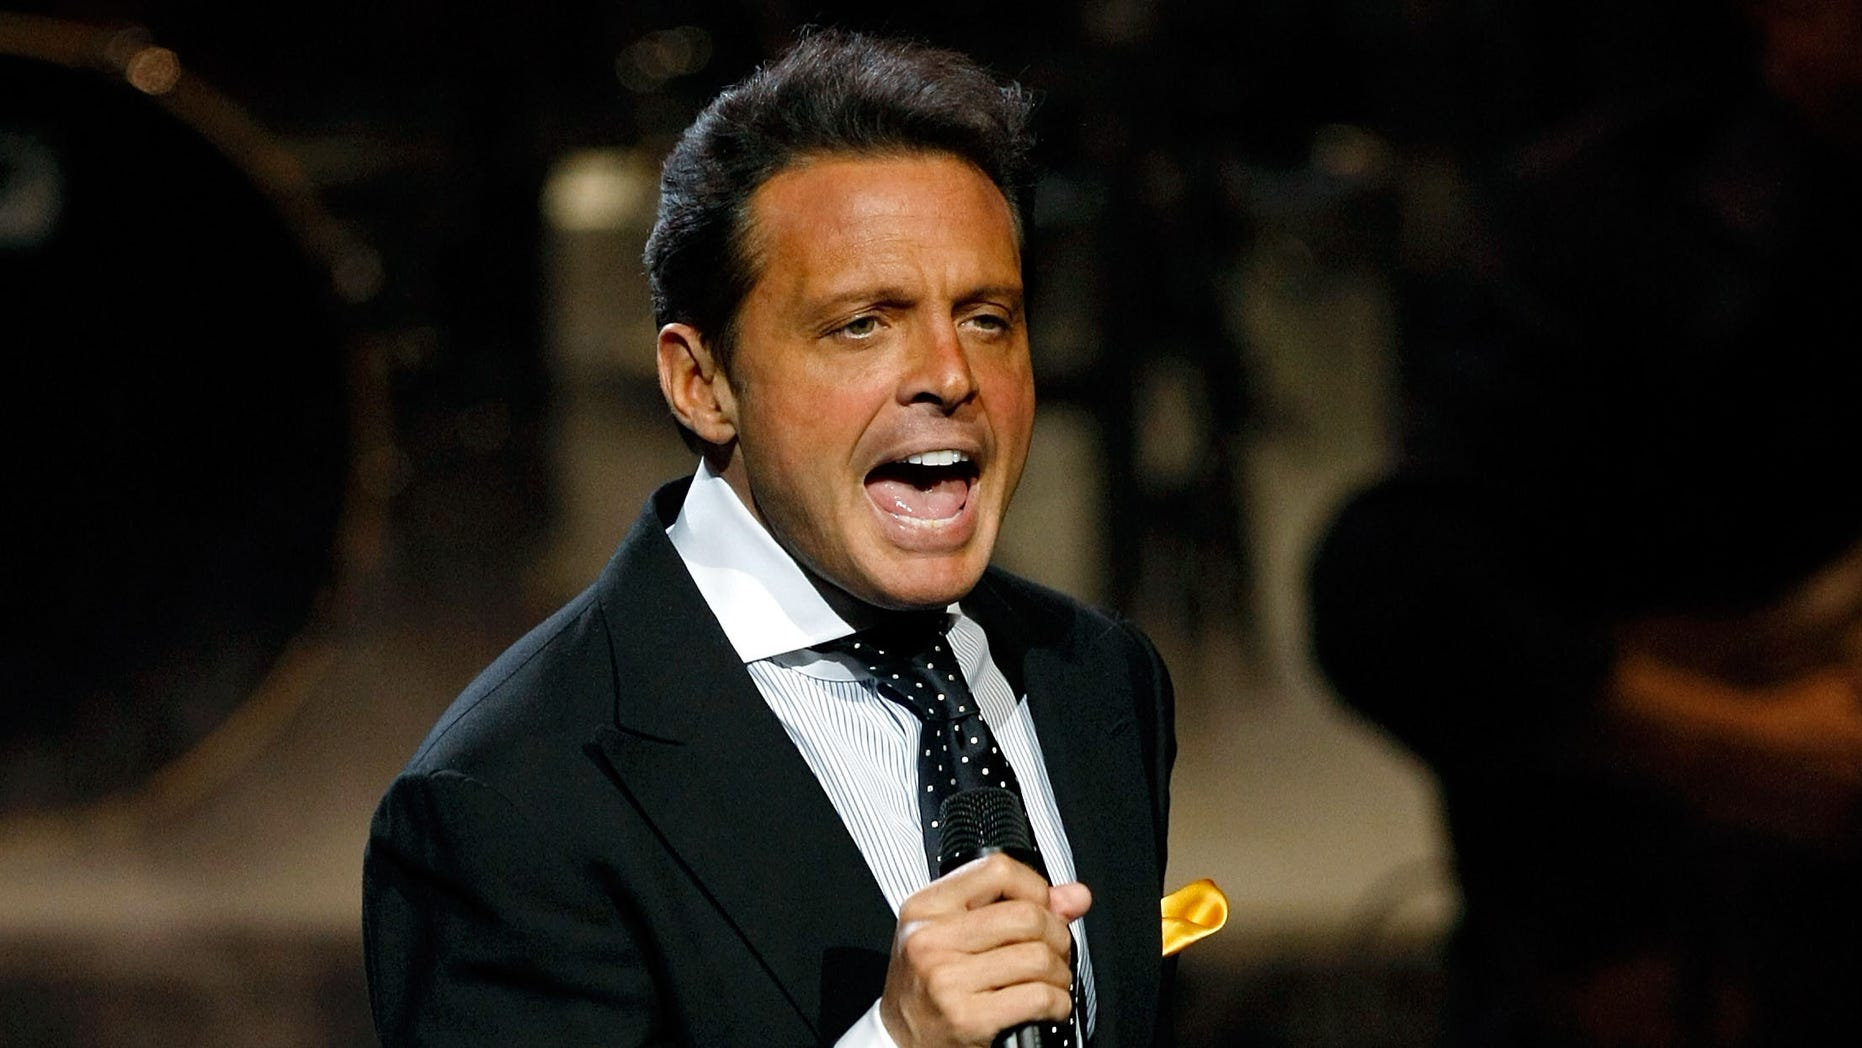 LAS VEGAS - SEPTEMBER 15:  Singer Luis Miguel performs during the first of four sold-out shows at The Colosseum at Caesars Palace September 15, 2010 in Las Vegas, Nevada. Miguel released a self-titled studio album on September 14.  (Photo by Ethan Miller/Getty Images)